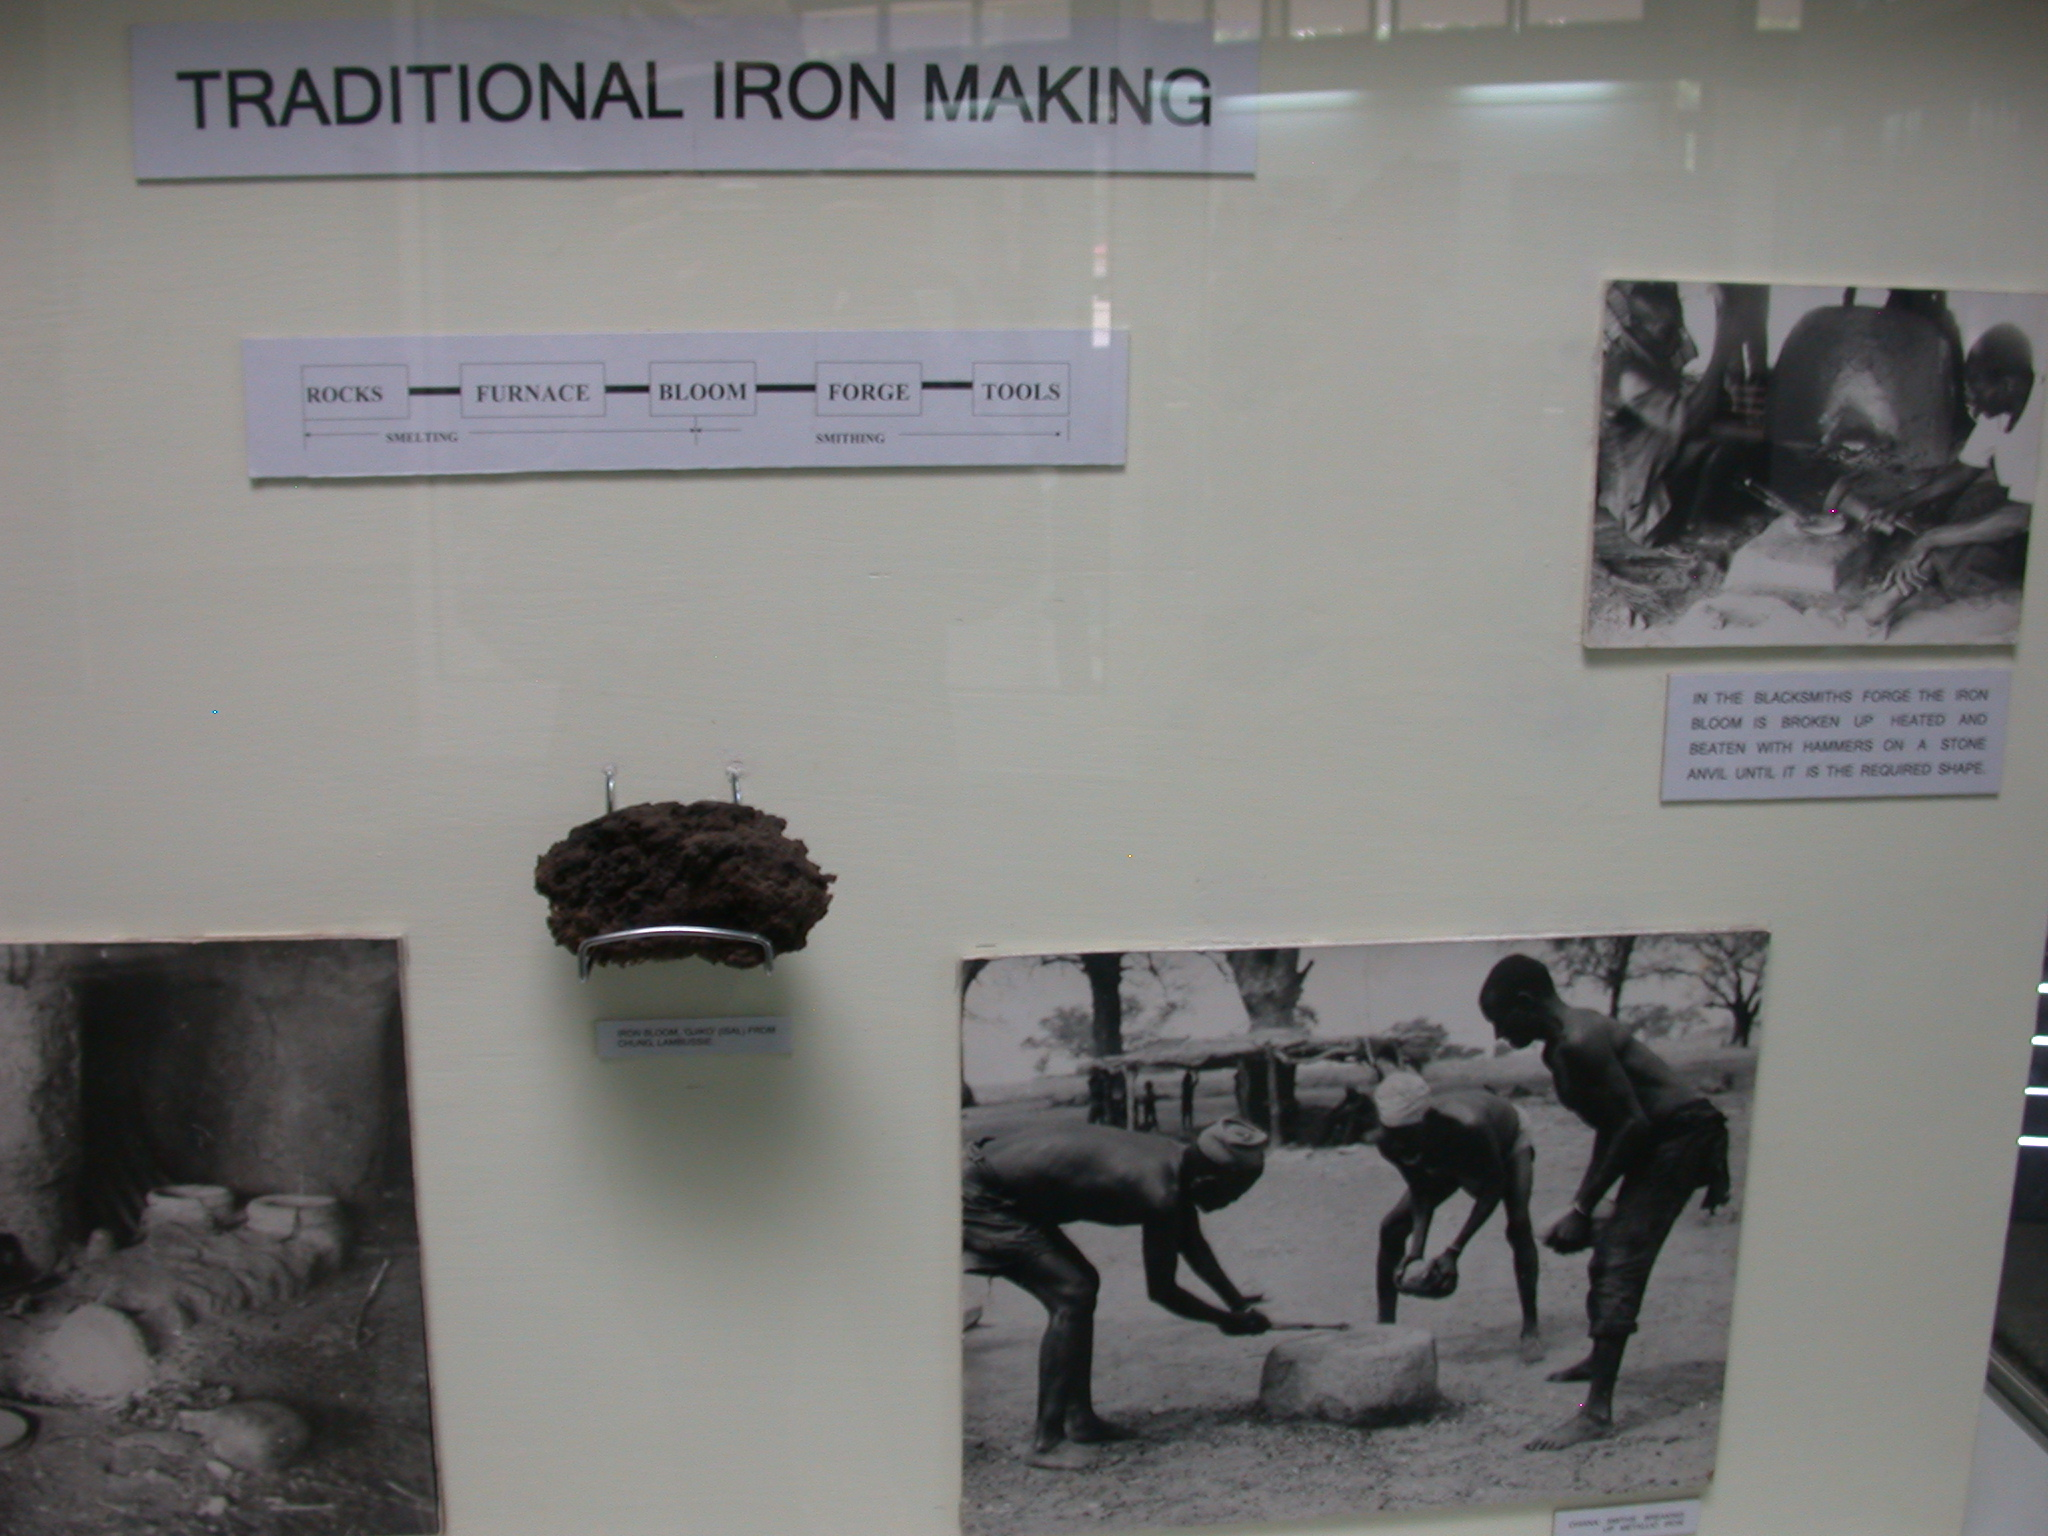 Traditional Iron Making, Blacksmith and Forge, National Museum, Accra, Ghana